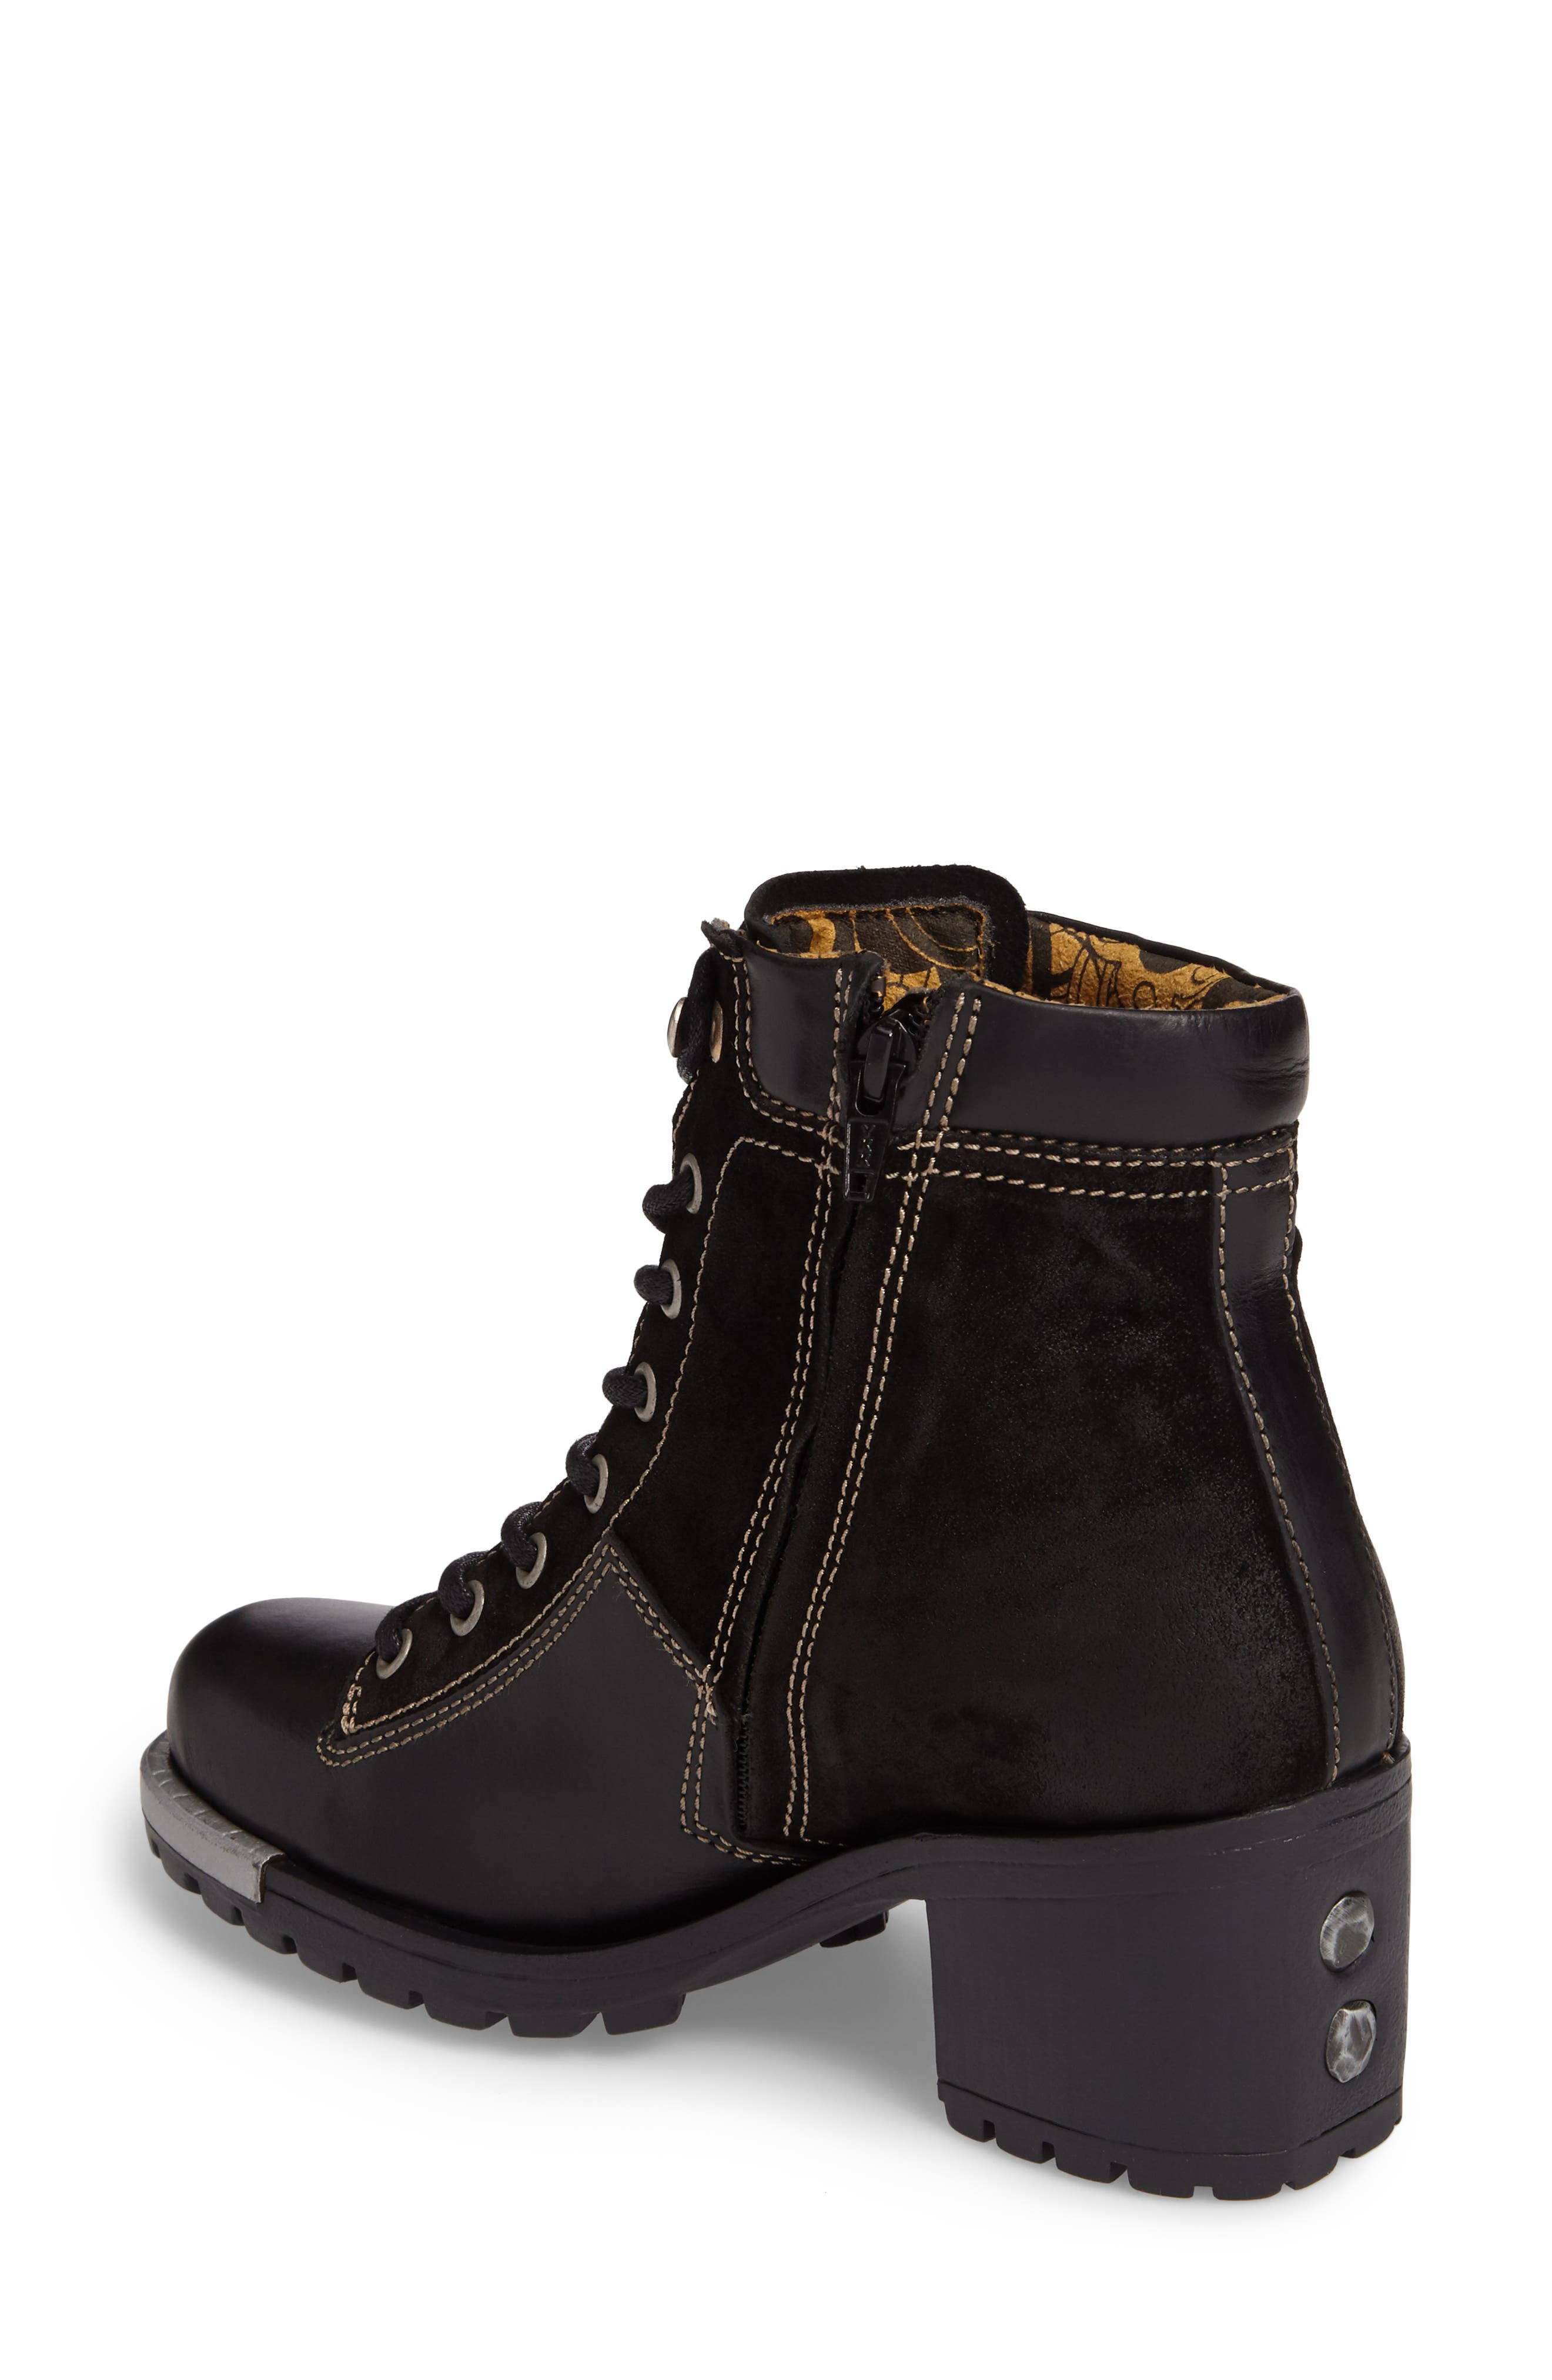 FLY LONDON,                             'Leal' Boot,                             Alternate thumbnail 2, color,                             005